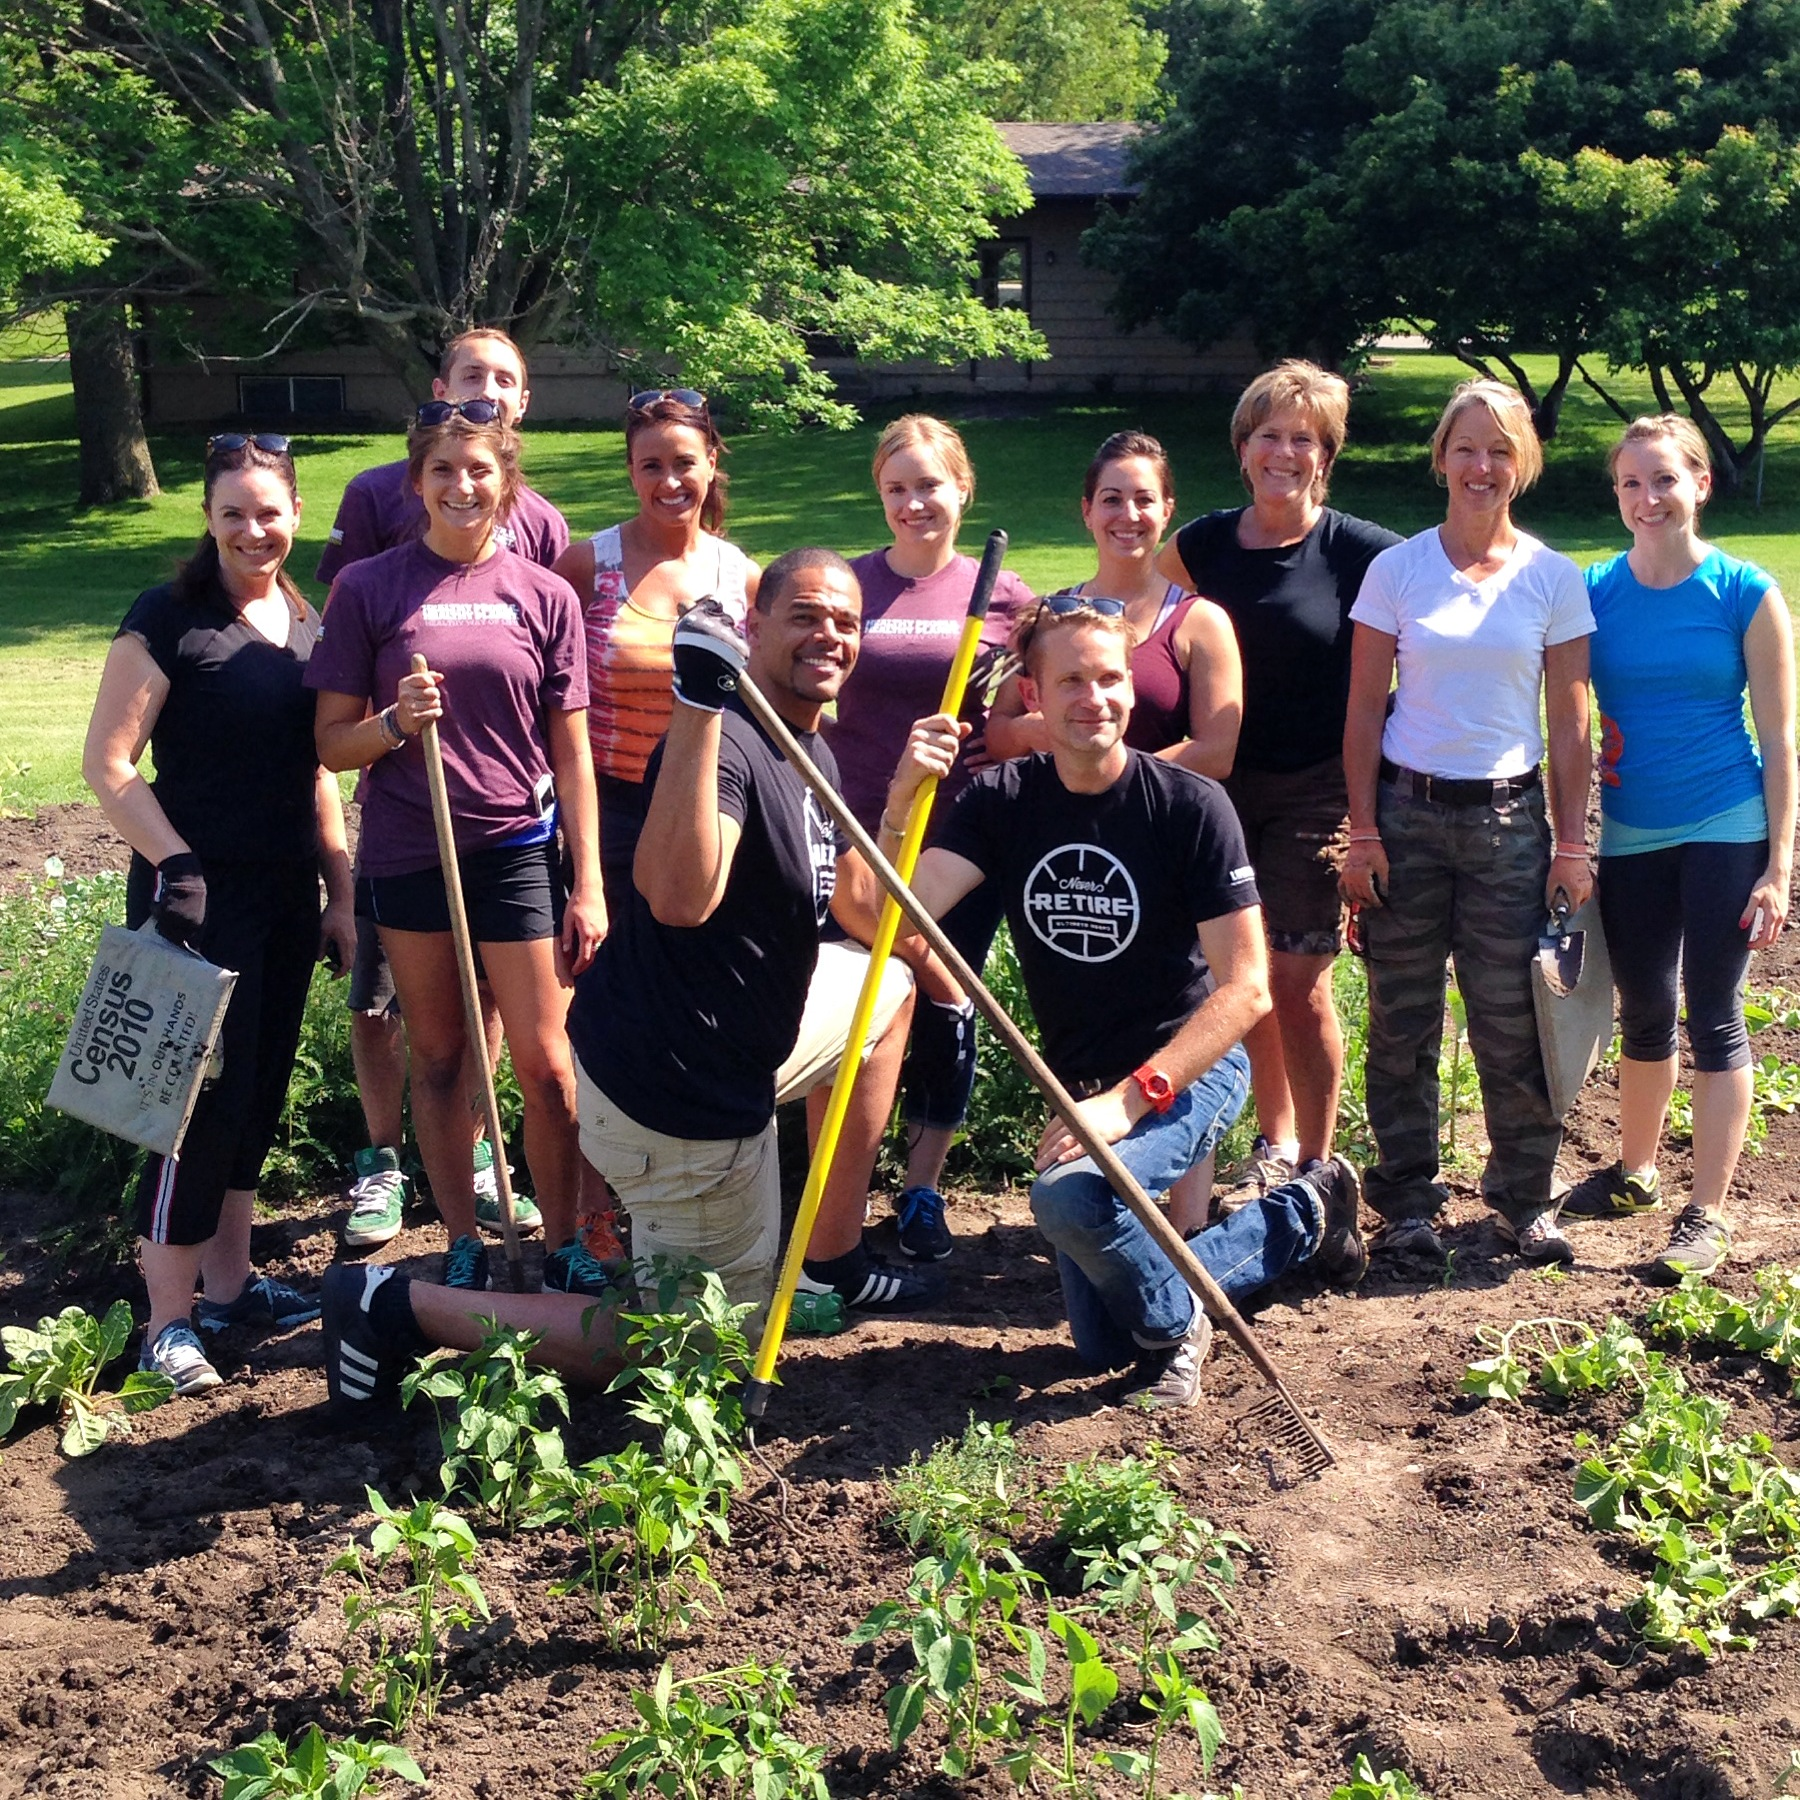 Ultimate Hoops' John Thomas (kneeling left) and Alan Arlt (kneeling right) volunteered with others from Life Time Fitness to help Grow.Eat.Share.